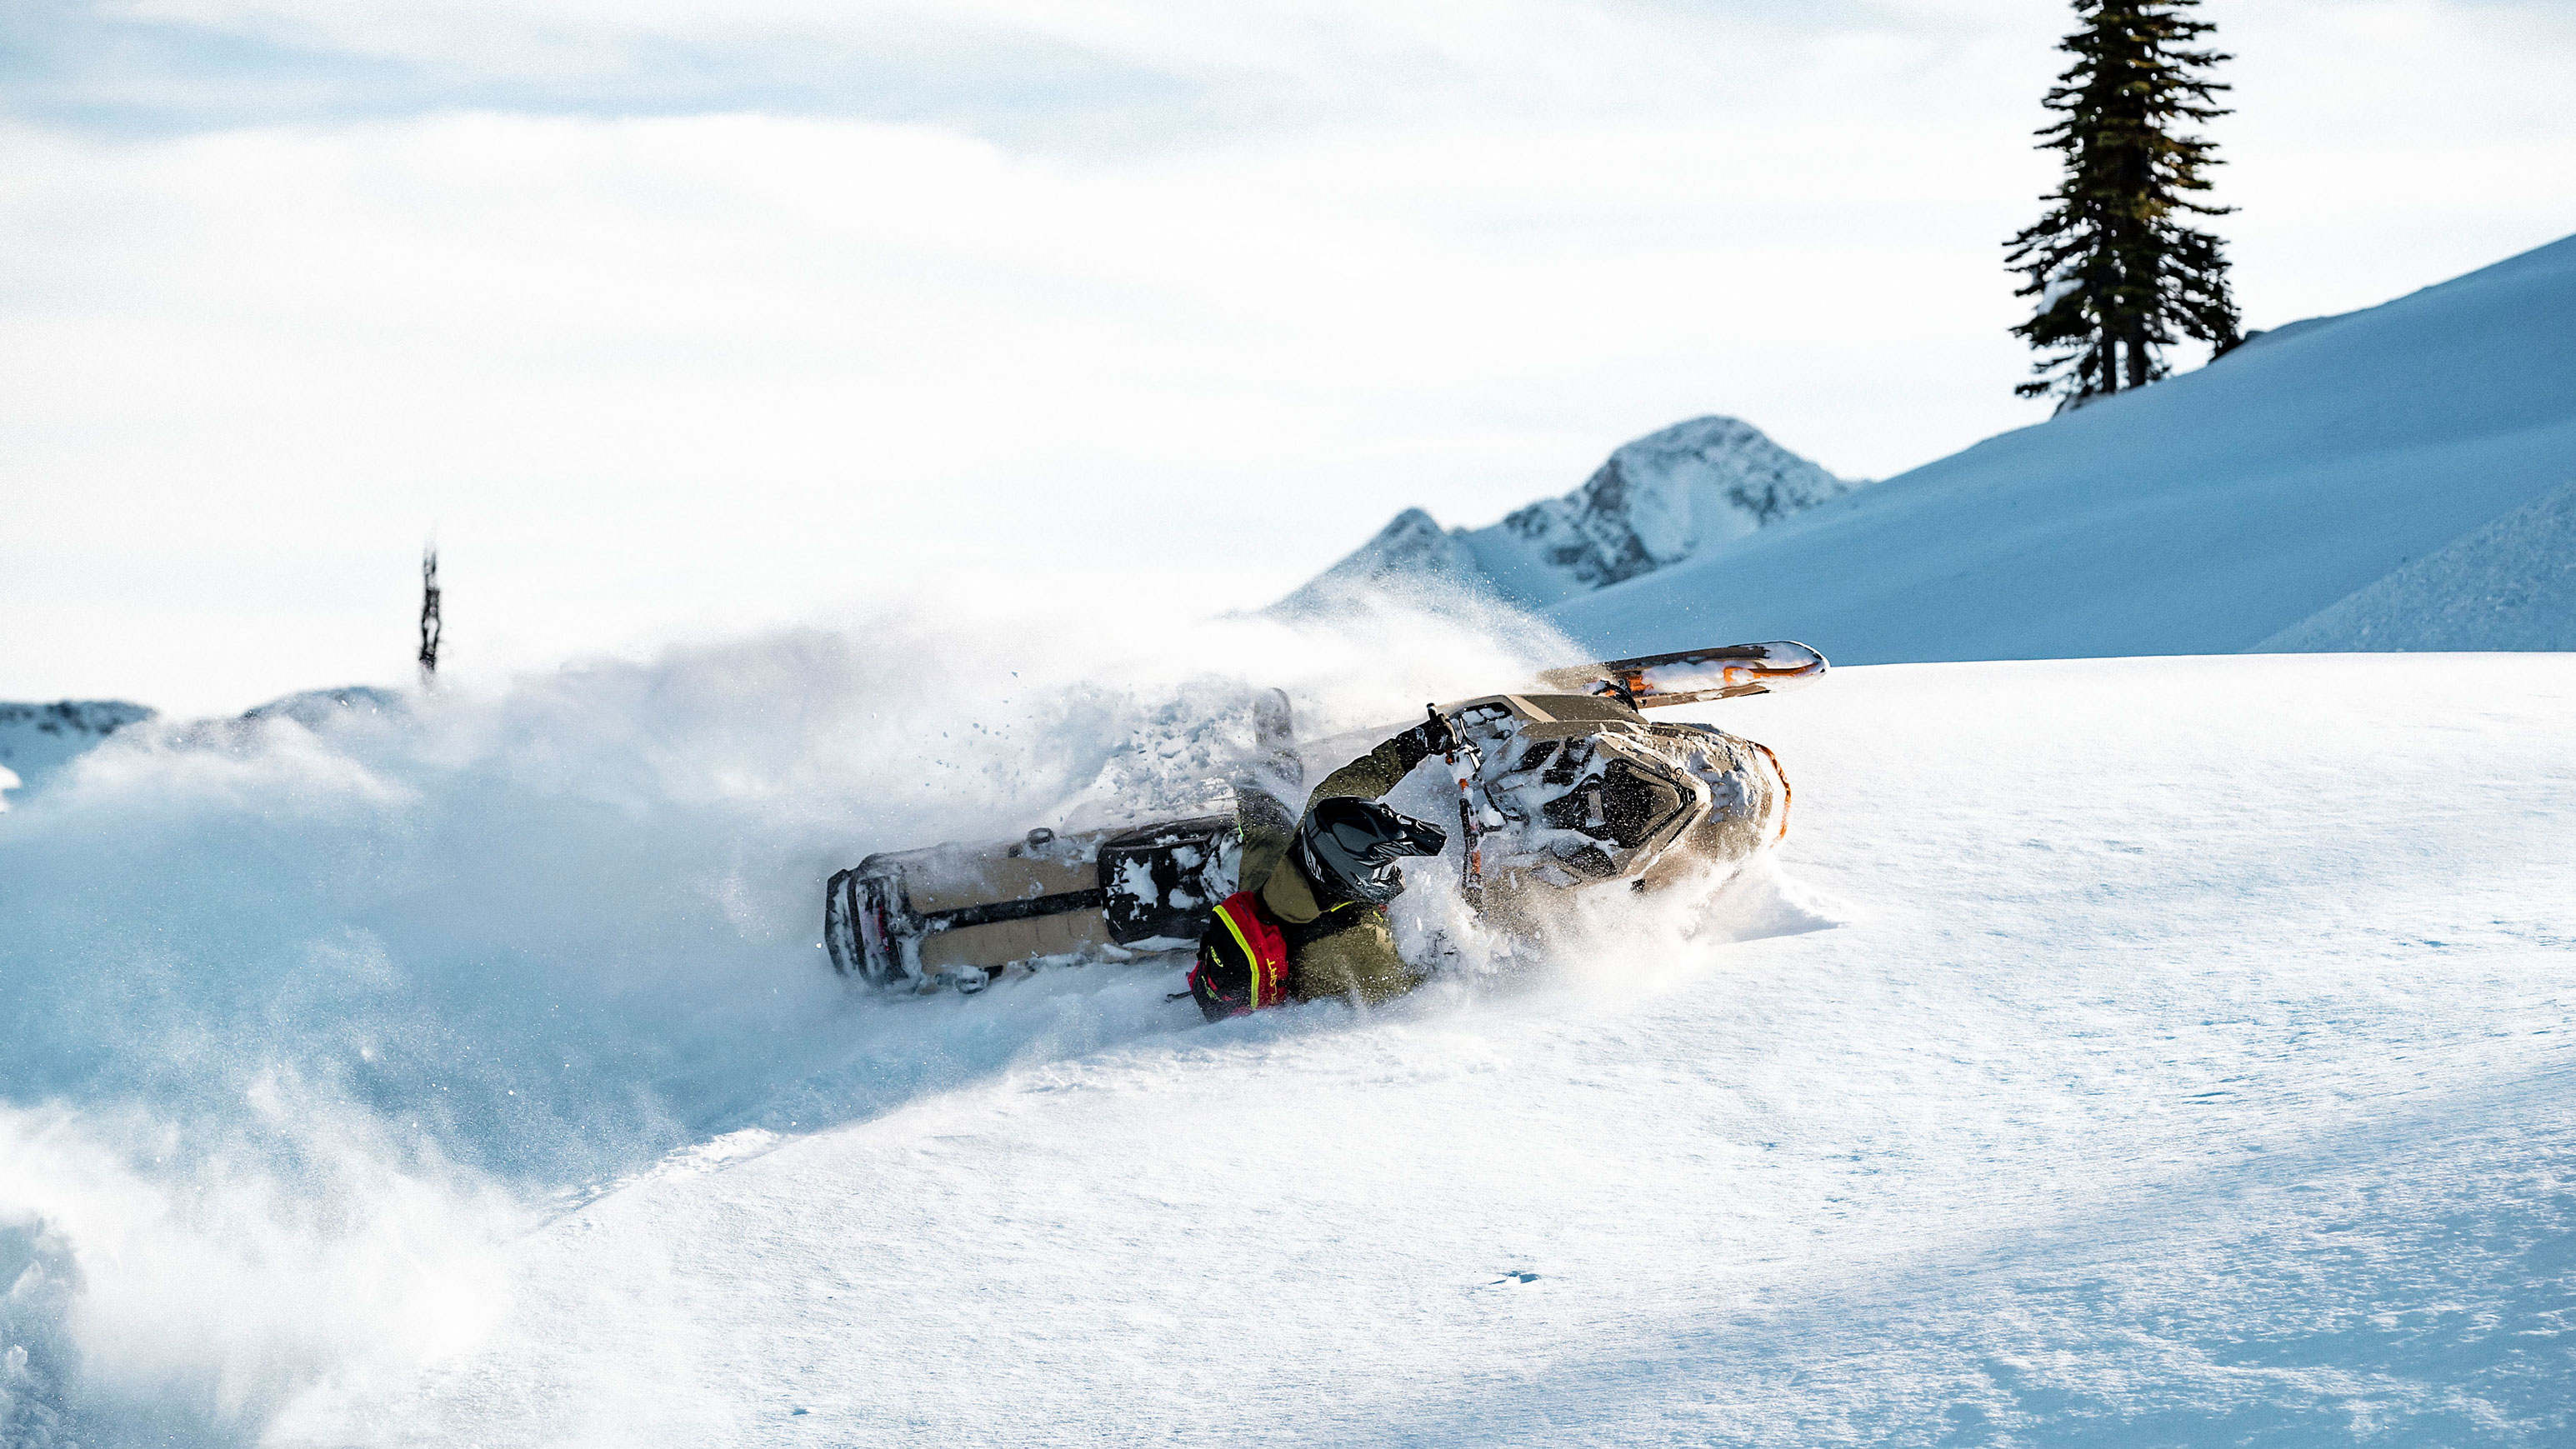 2022 Ski-Doo Freeride carving in Deep-Snow